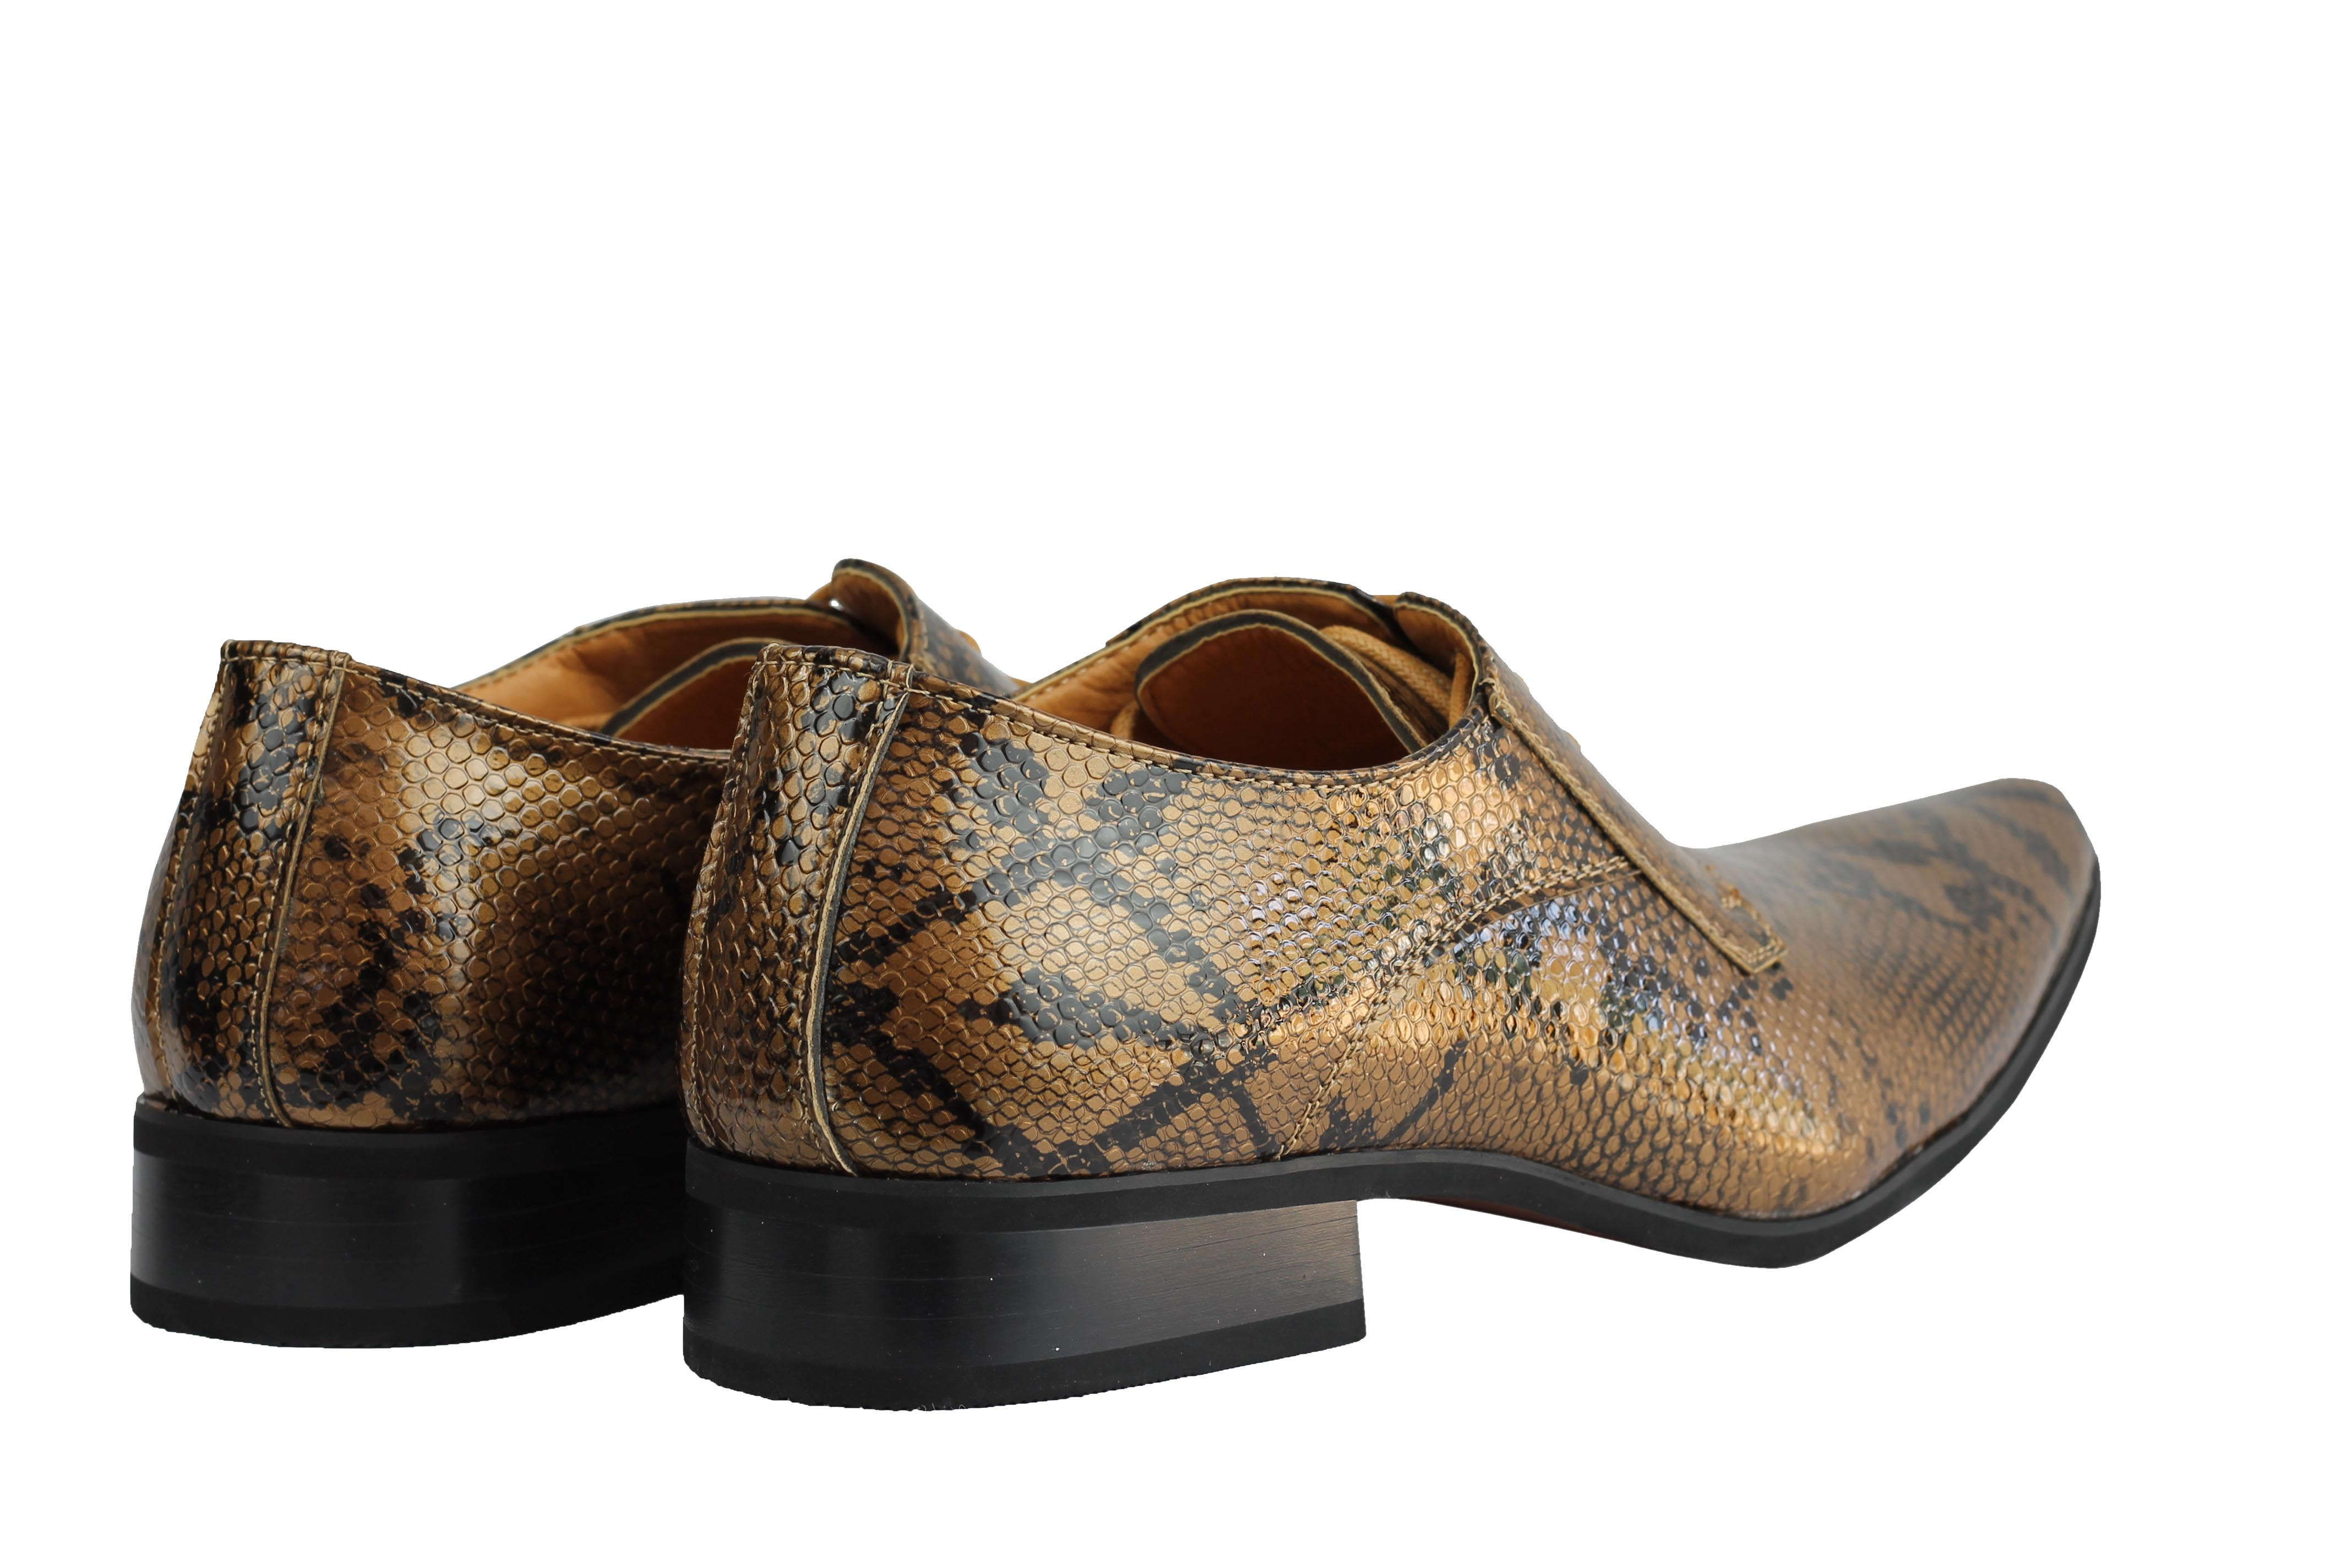 Mens-Leather-Lined-Snake-Skin-Print-Shiny-Patent-Leather-Smart-Party-Retro-Shoes thumbnail 12